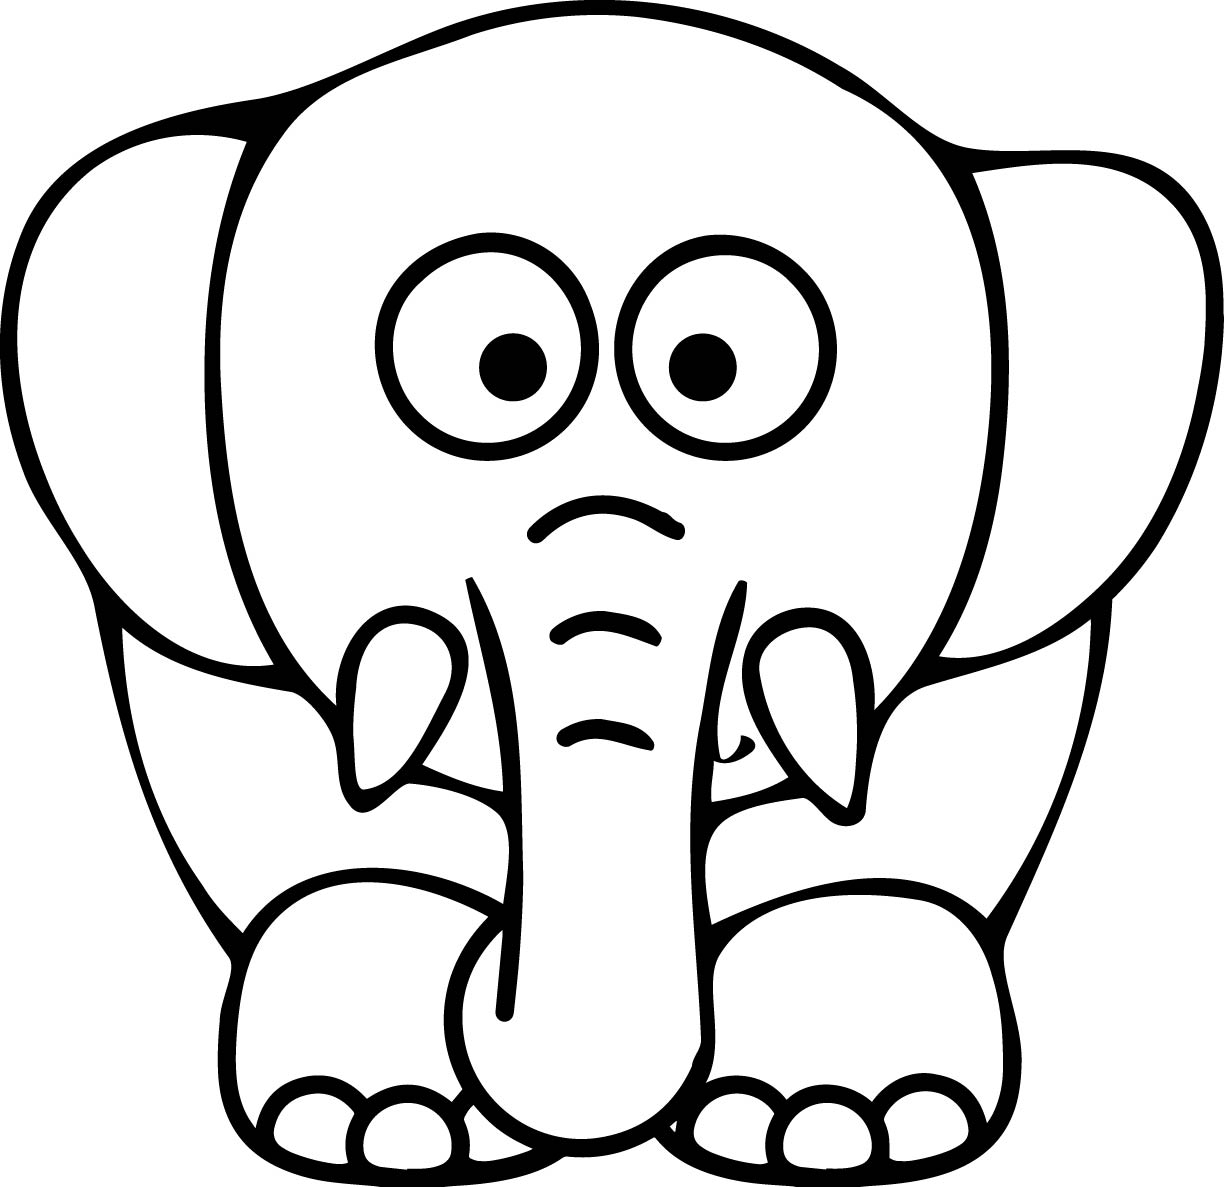 Elephant cartoon image